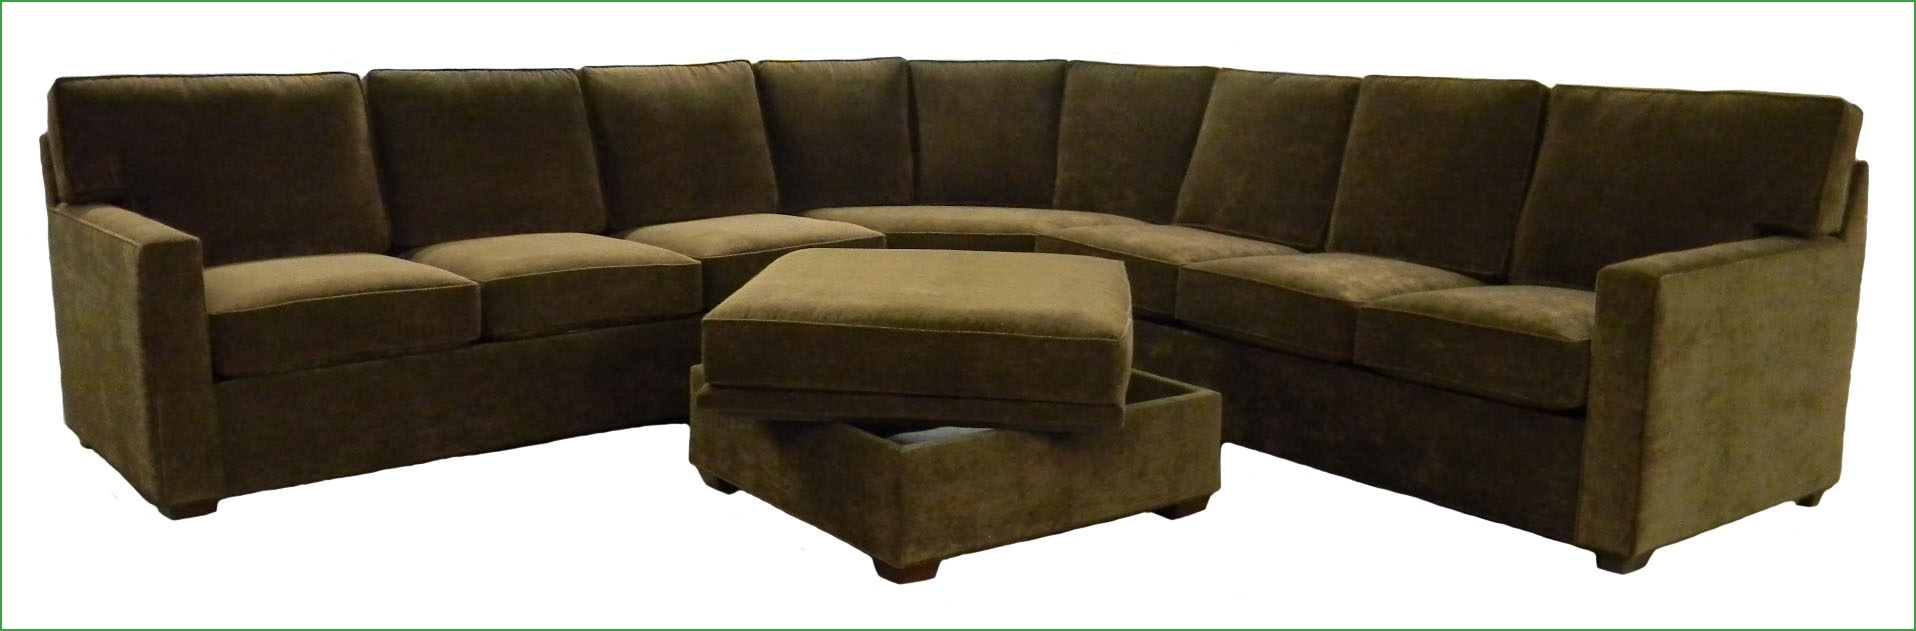 Finally A Sectional Couch Fit For An Sf Condo Custom Made Intended For Custom Made Sectional Sofas (Image 11 of 15)